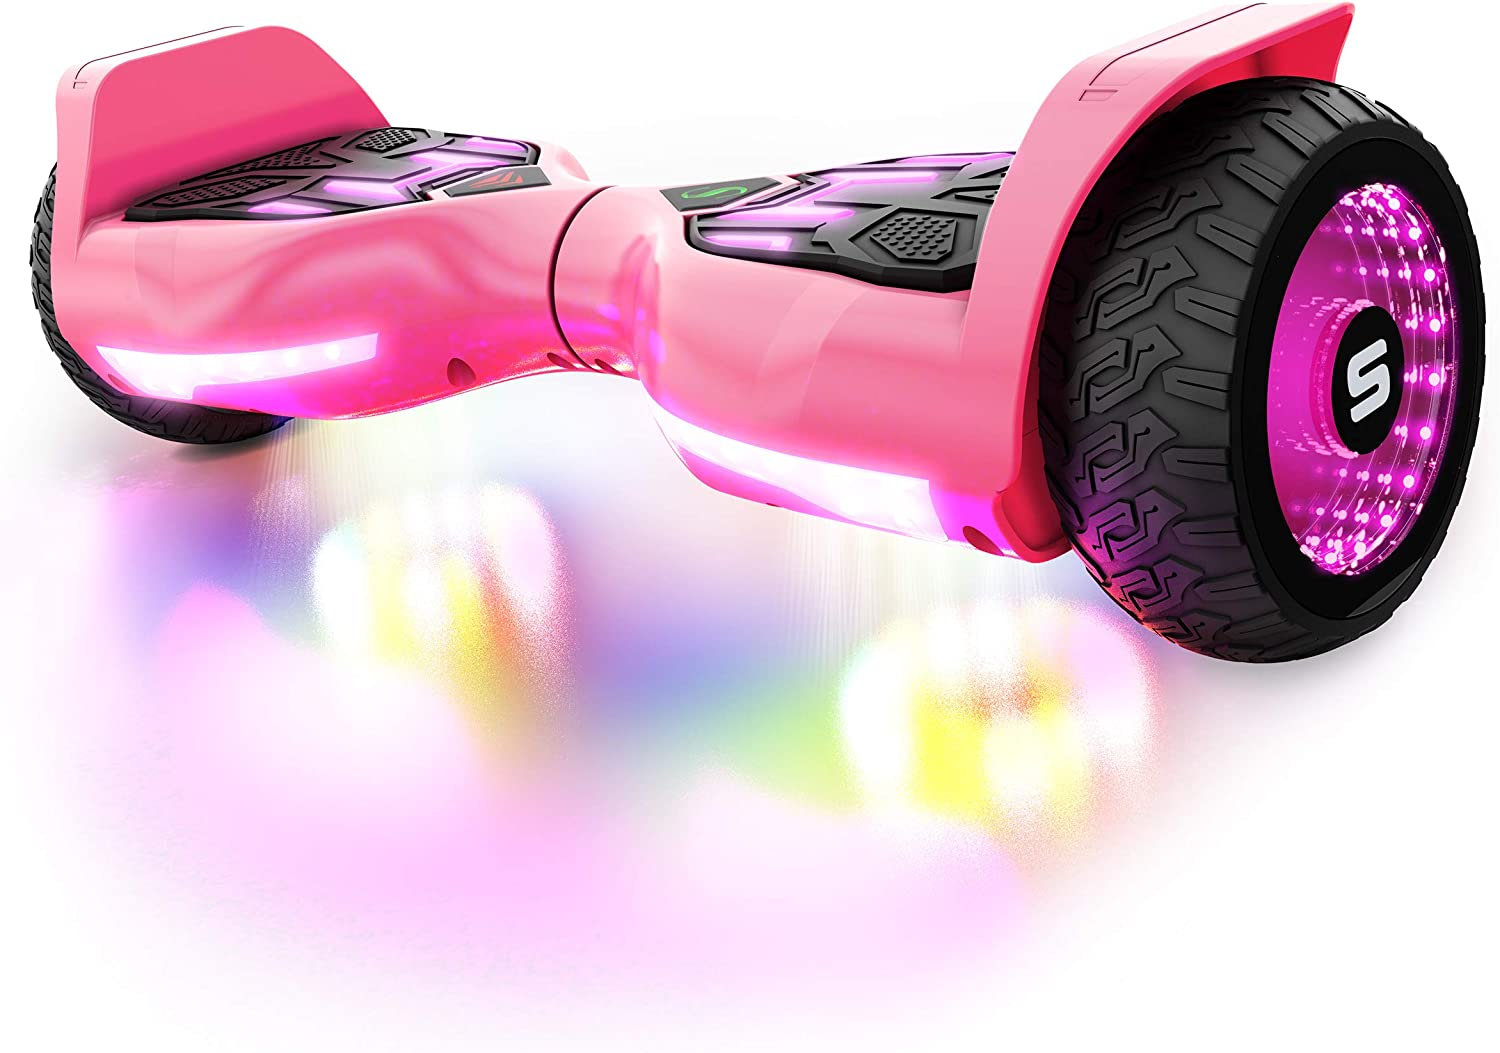 Swagtron T580 Special sale item App-Enabled Bluetooth Max 70% OFF Sma Hoverboard with Speaker